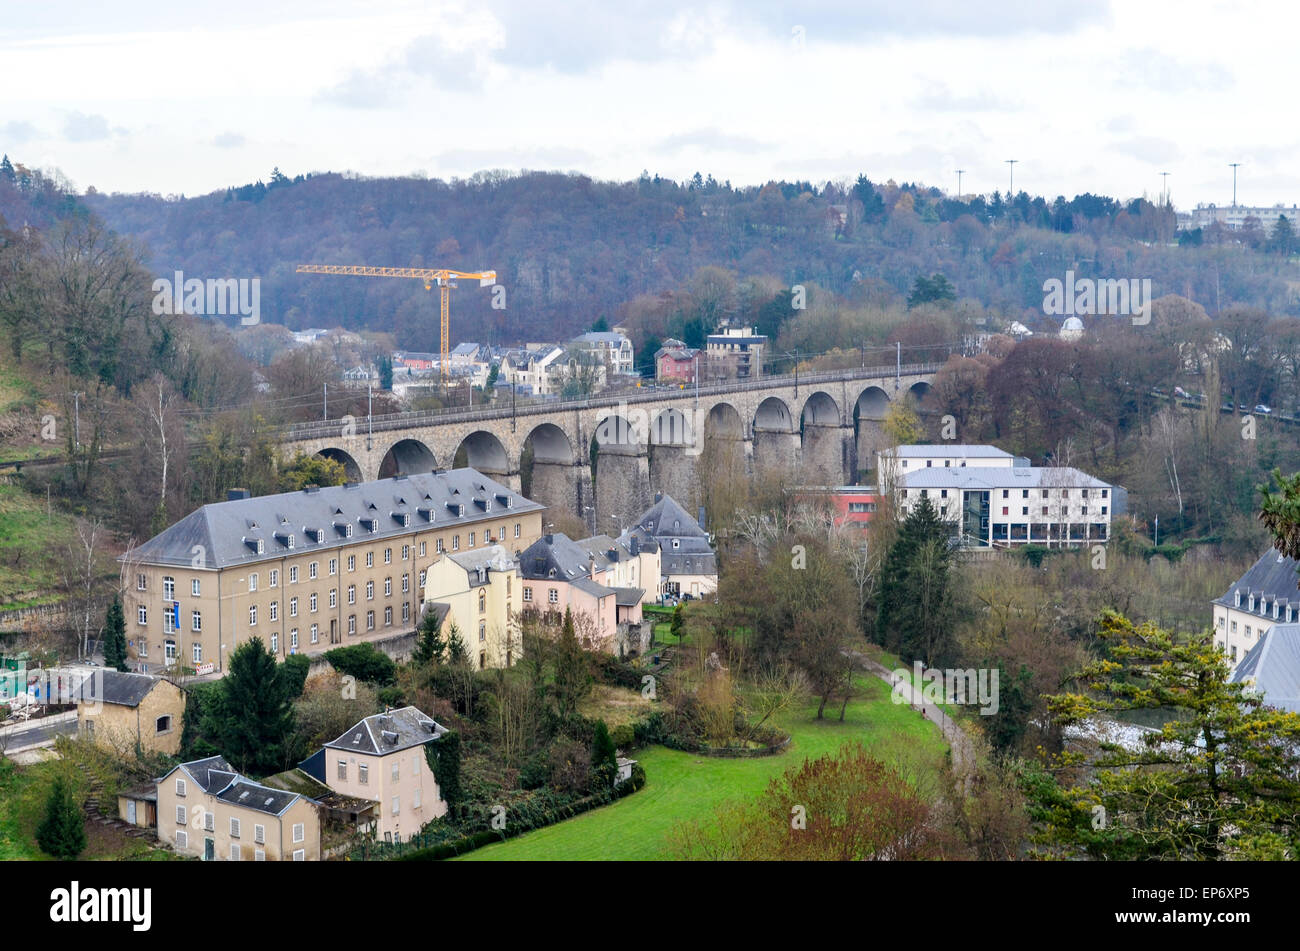 Luxembourg city, the Alzette valley - Stock Image